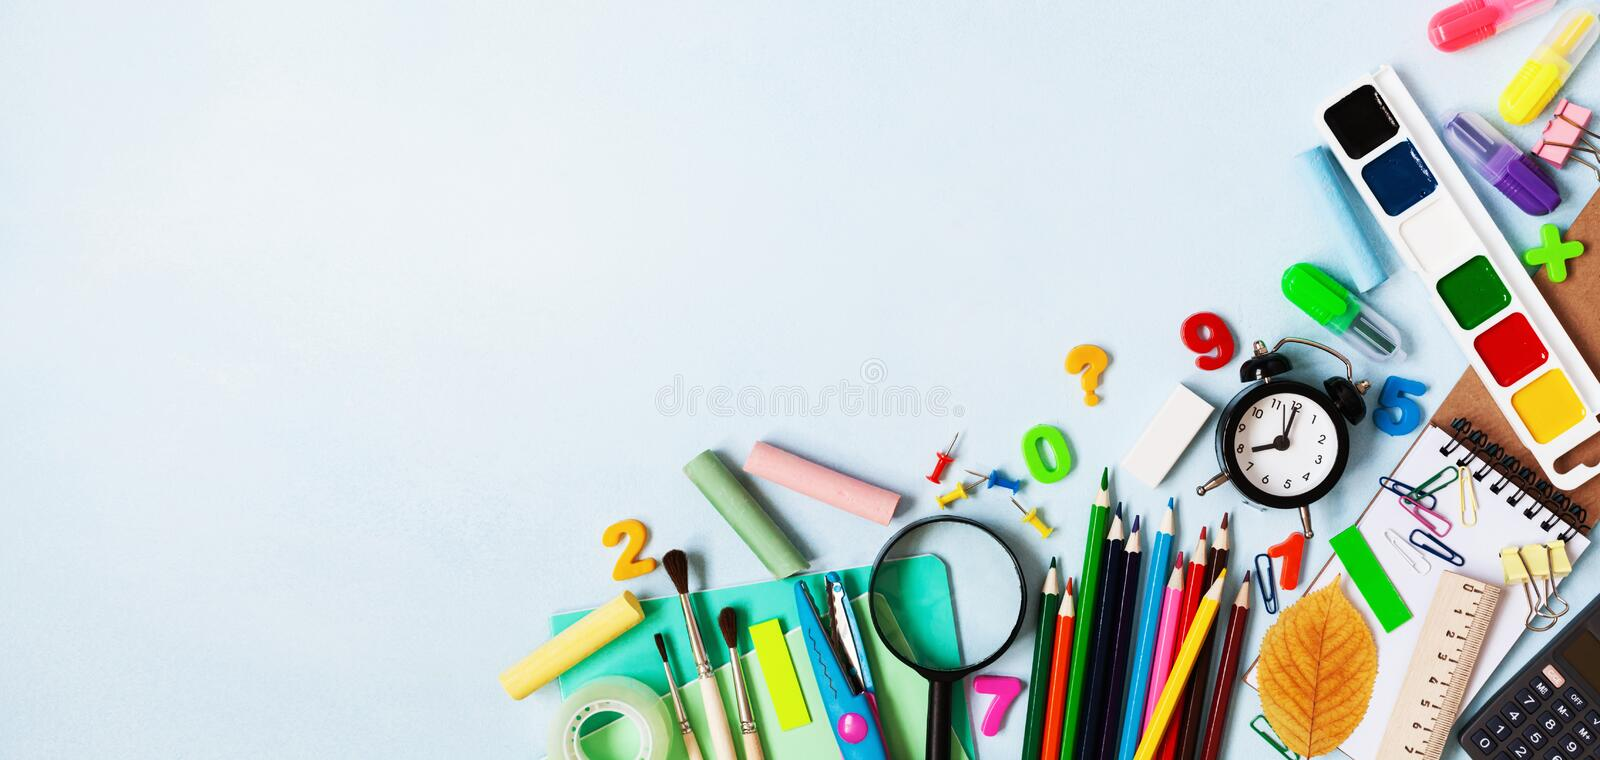 Set of different stationery, alarm clock and colorful supplies on blue background. Back to school concept. Banner format. Top view stock images